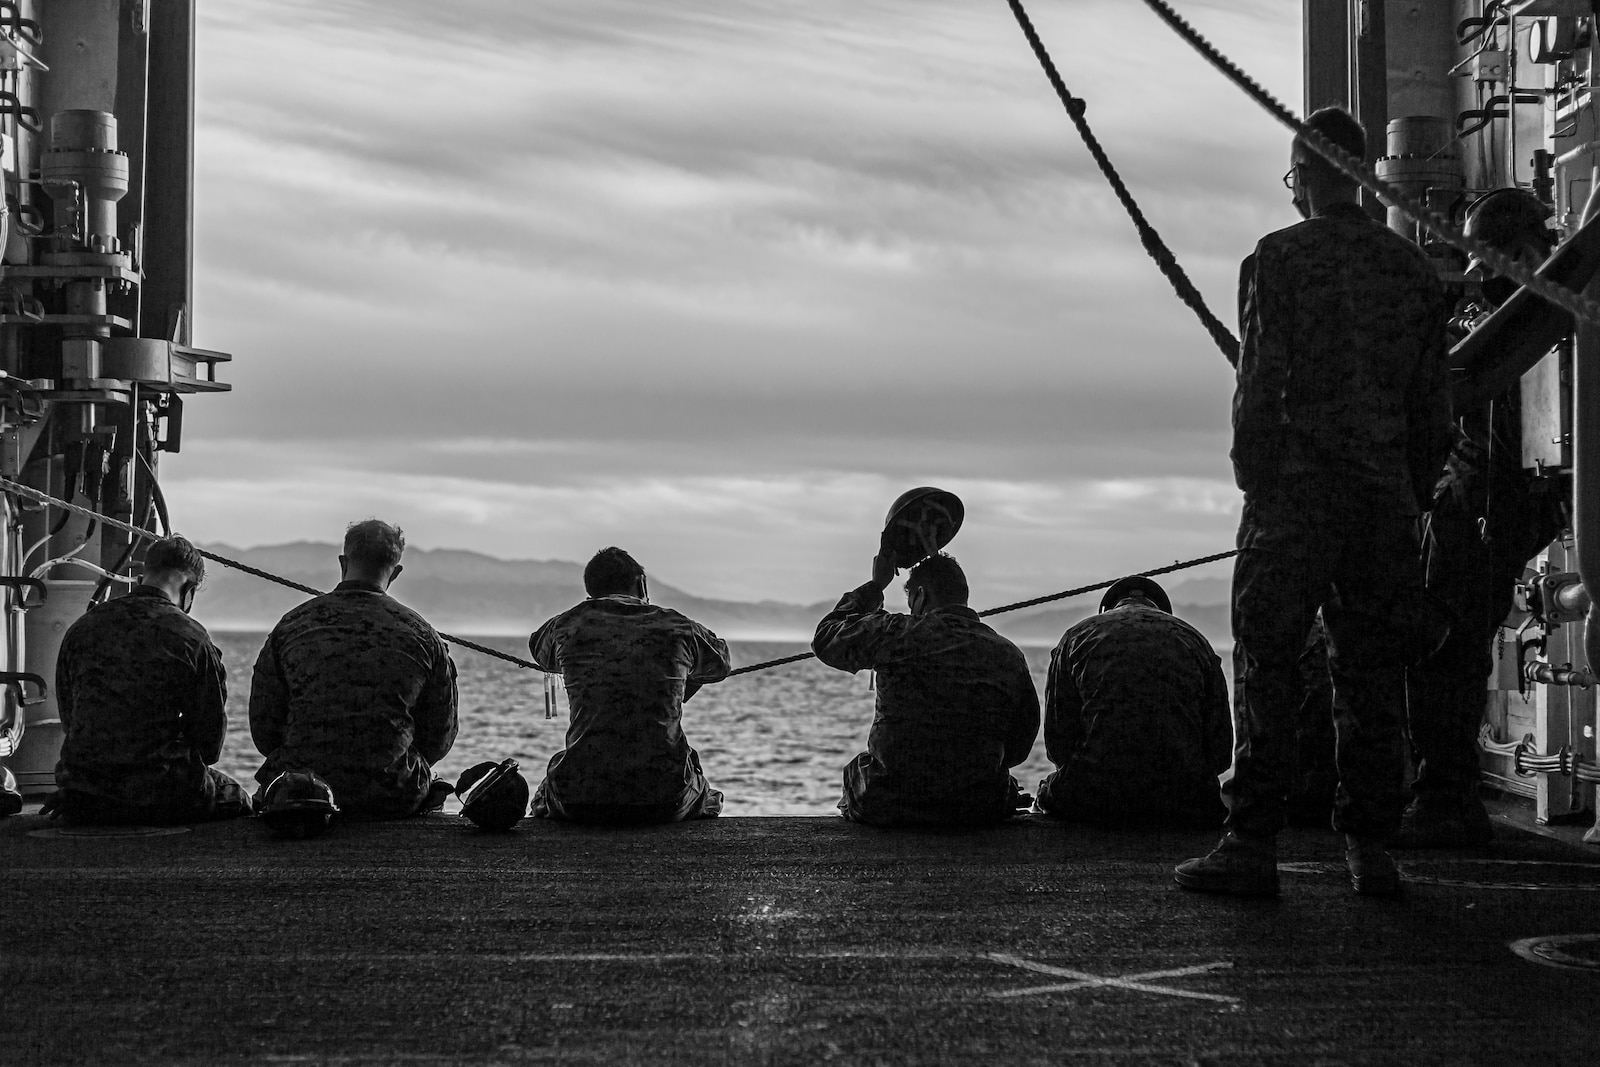 U.S. Marines with Combat Logistics Battalion 1 wait on the side of the USS Portland.